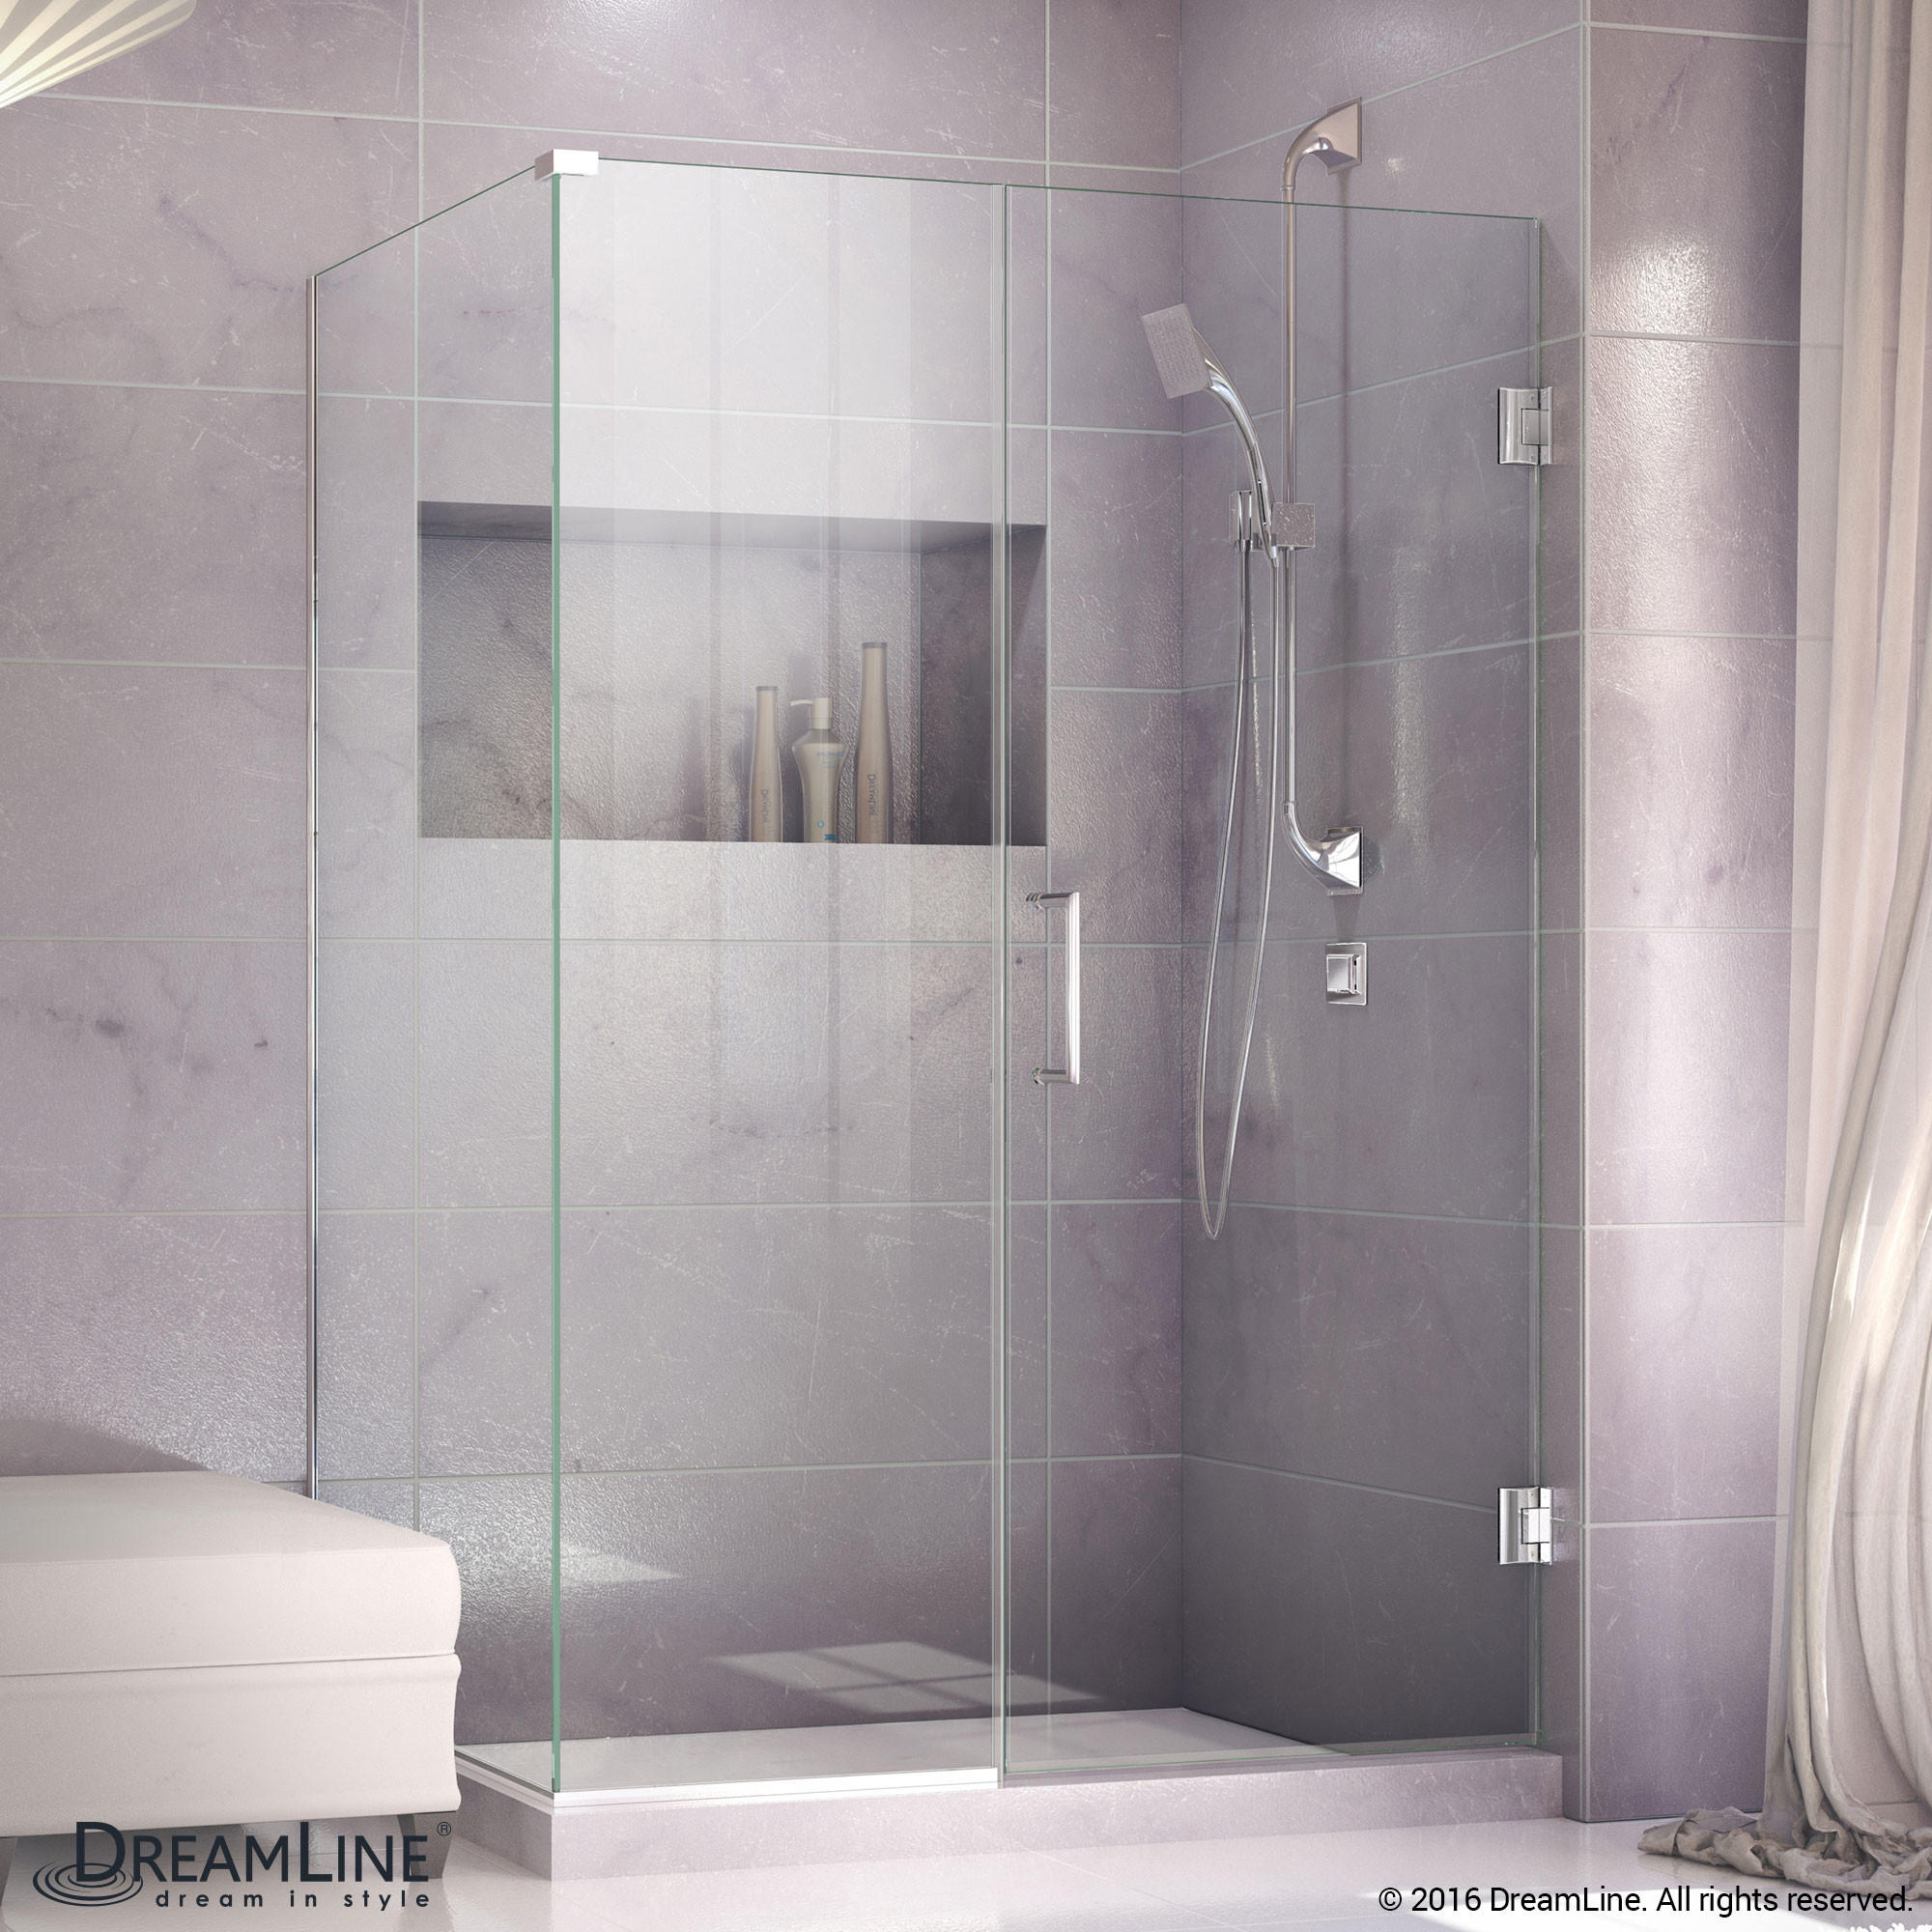 DreamLine SHEN-24560340-01 Unidoor Plus Hinged Shower Enclosure In Chrome Finish Hardware